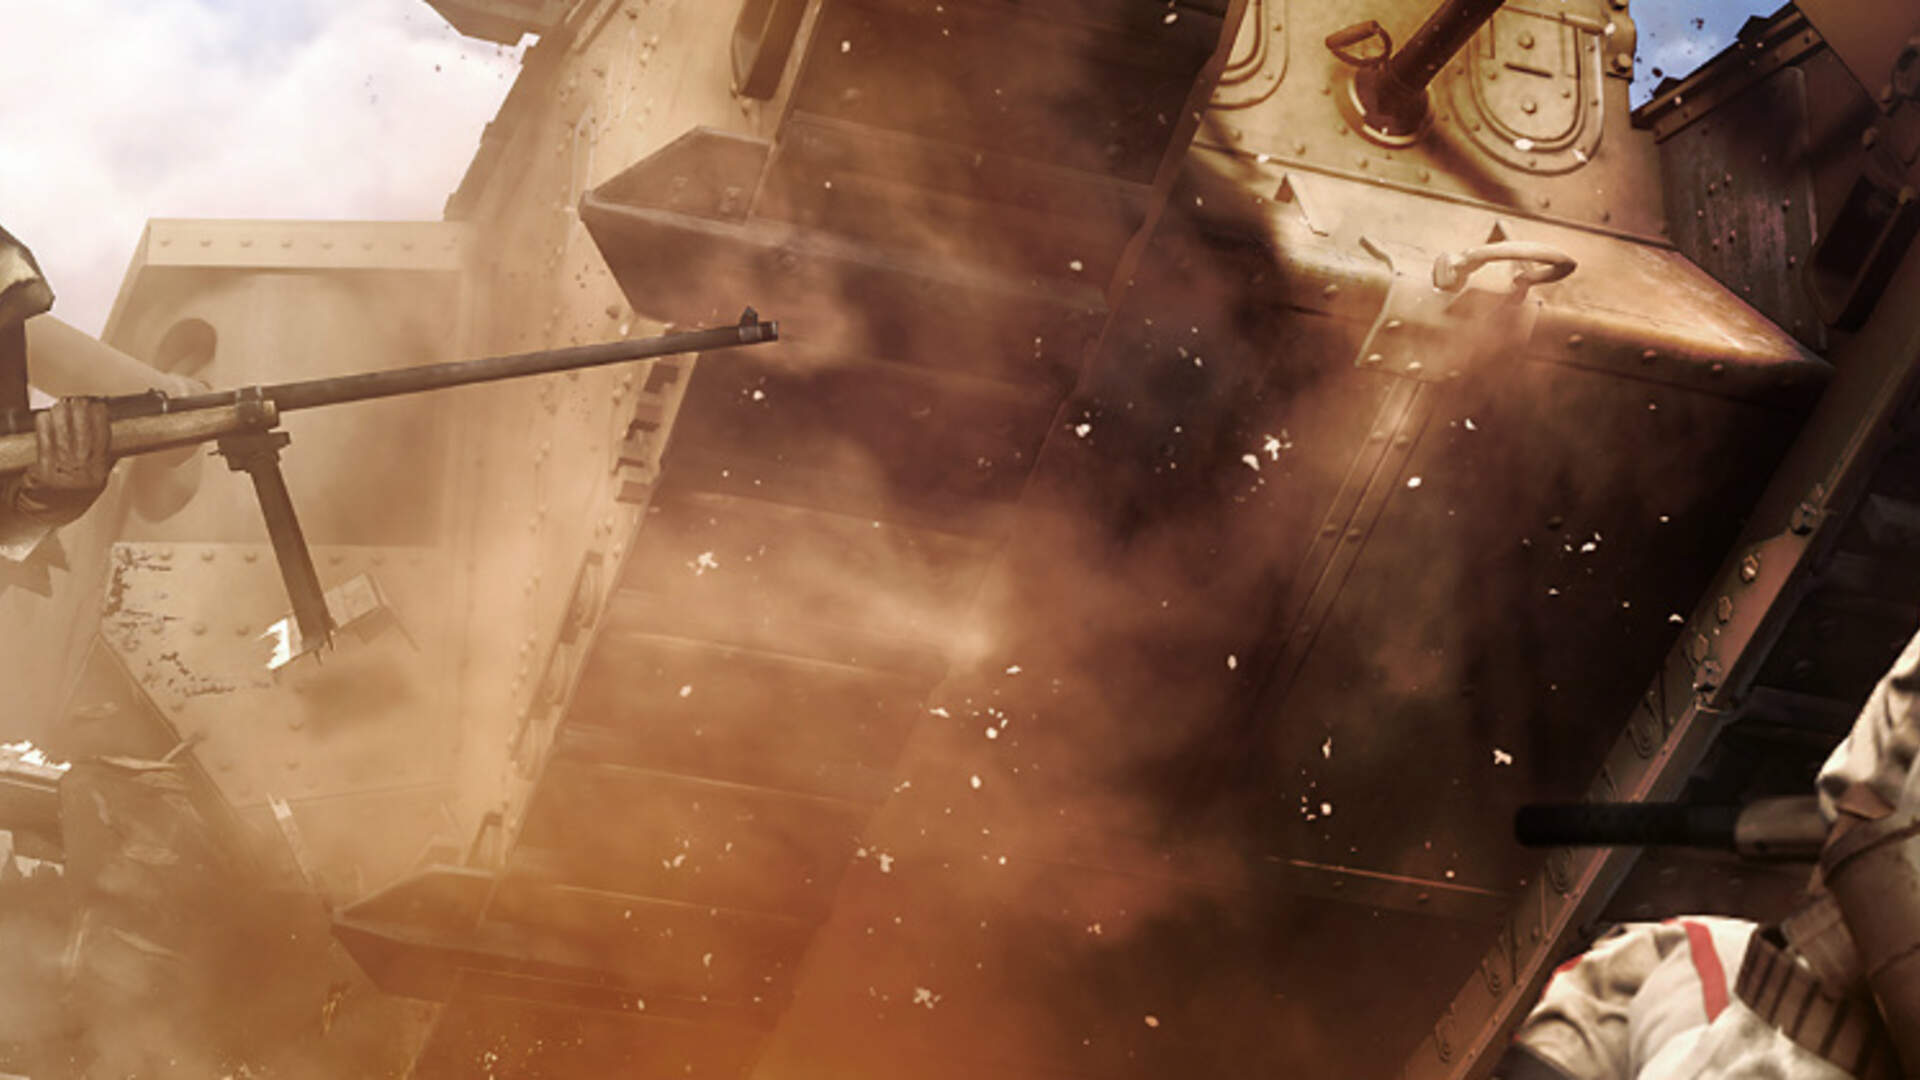 Battlefield 1 Xbox One Review: The Cavalry's Here